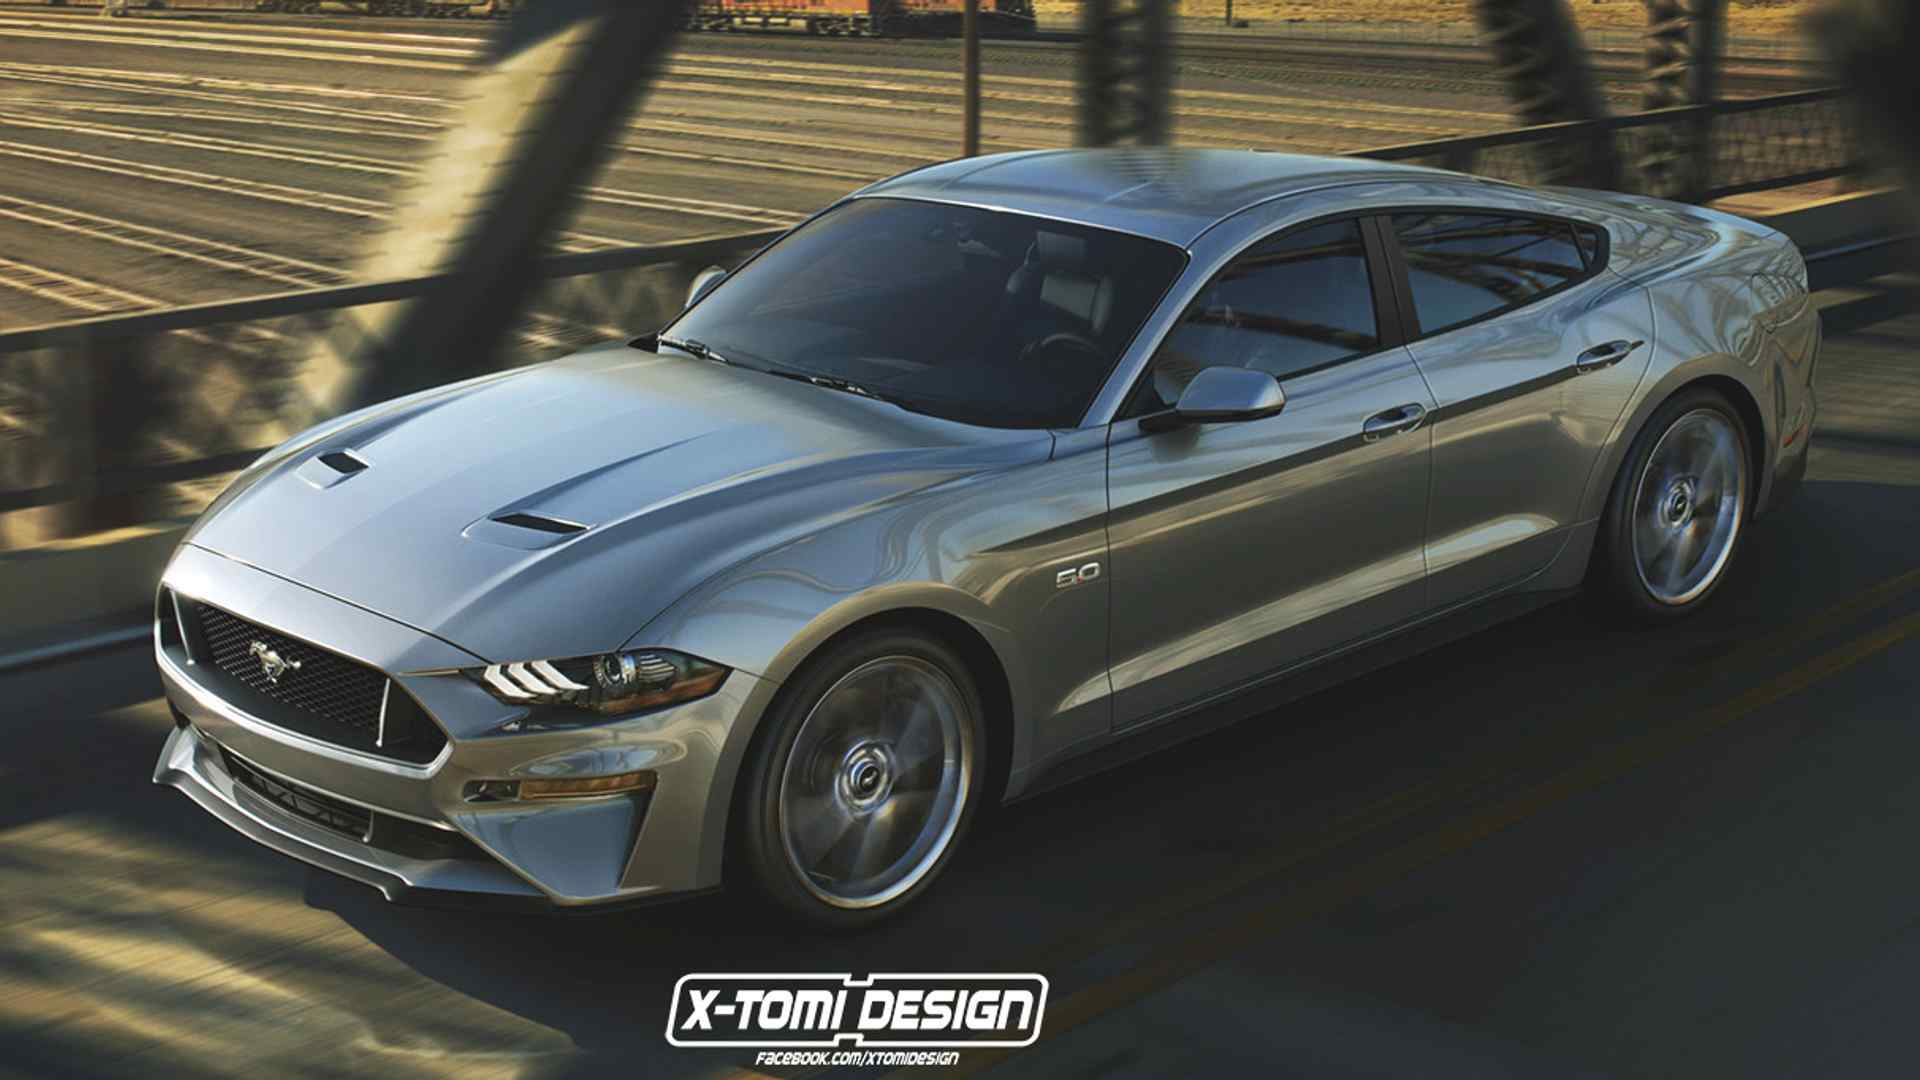 Not into suvs ford allegedly planning a v8 four door mustang